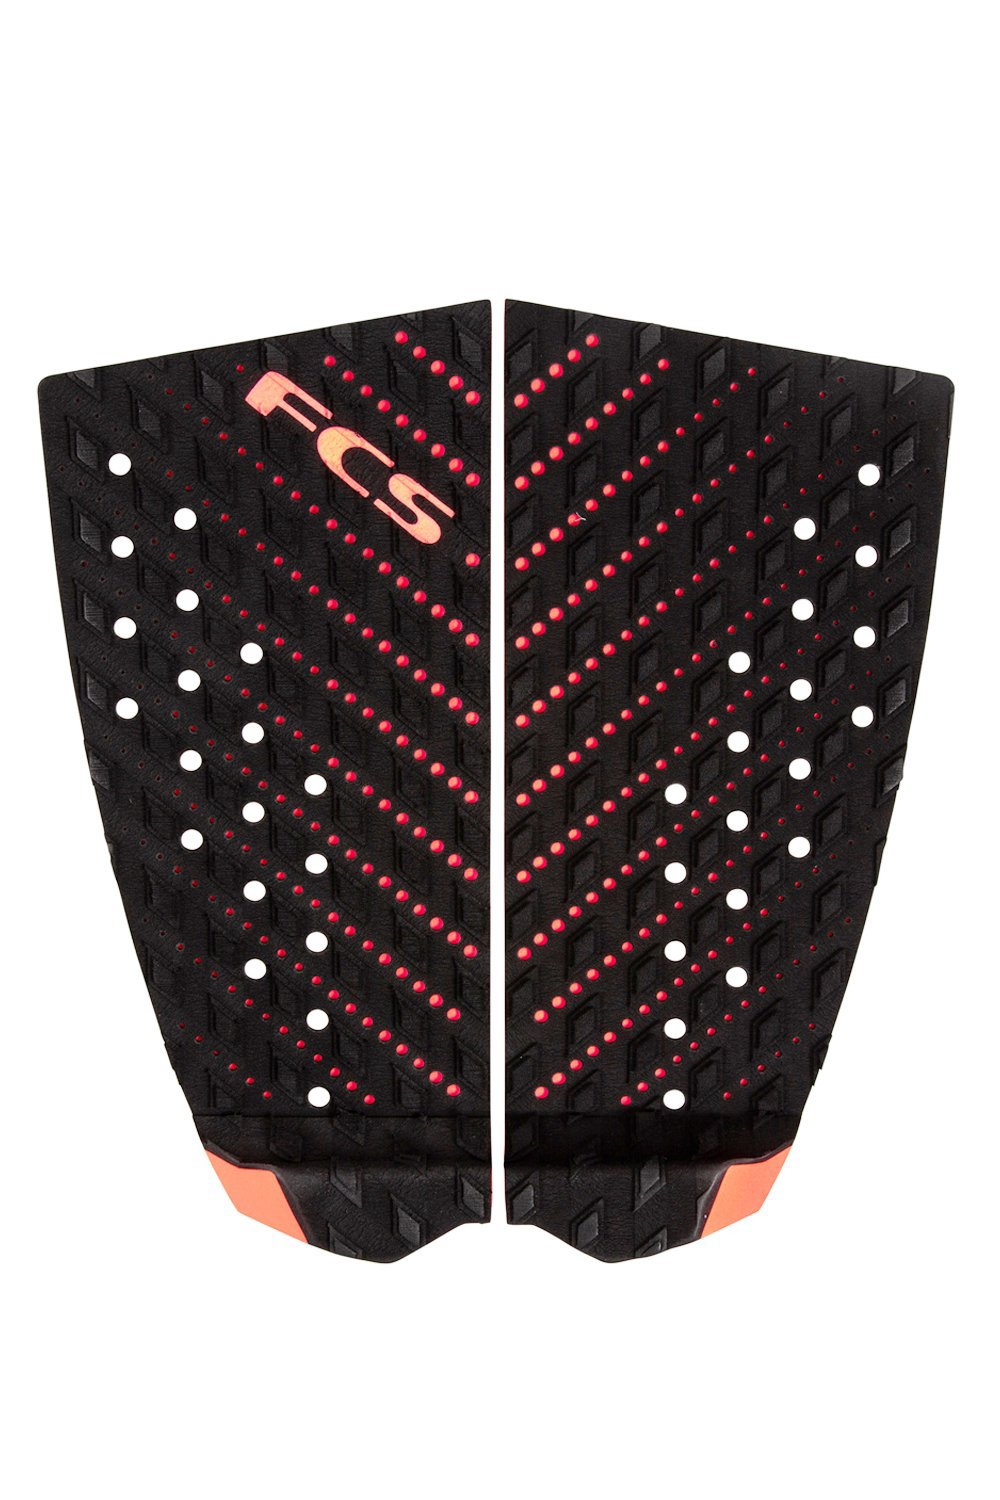 FCS T2 Traction Grip Pad